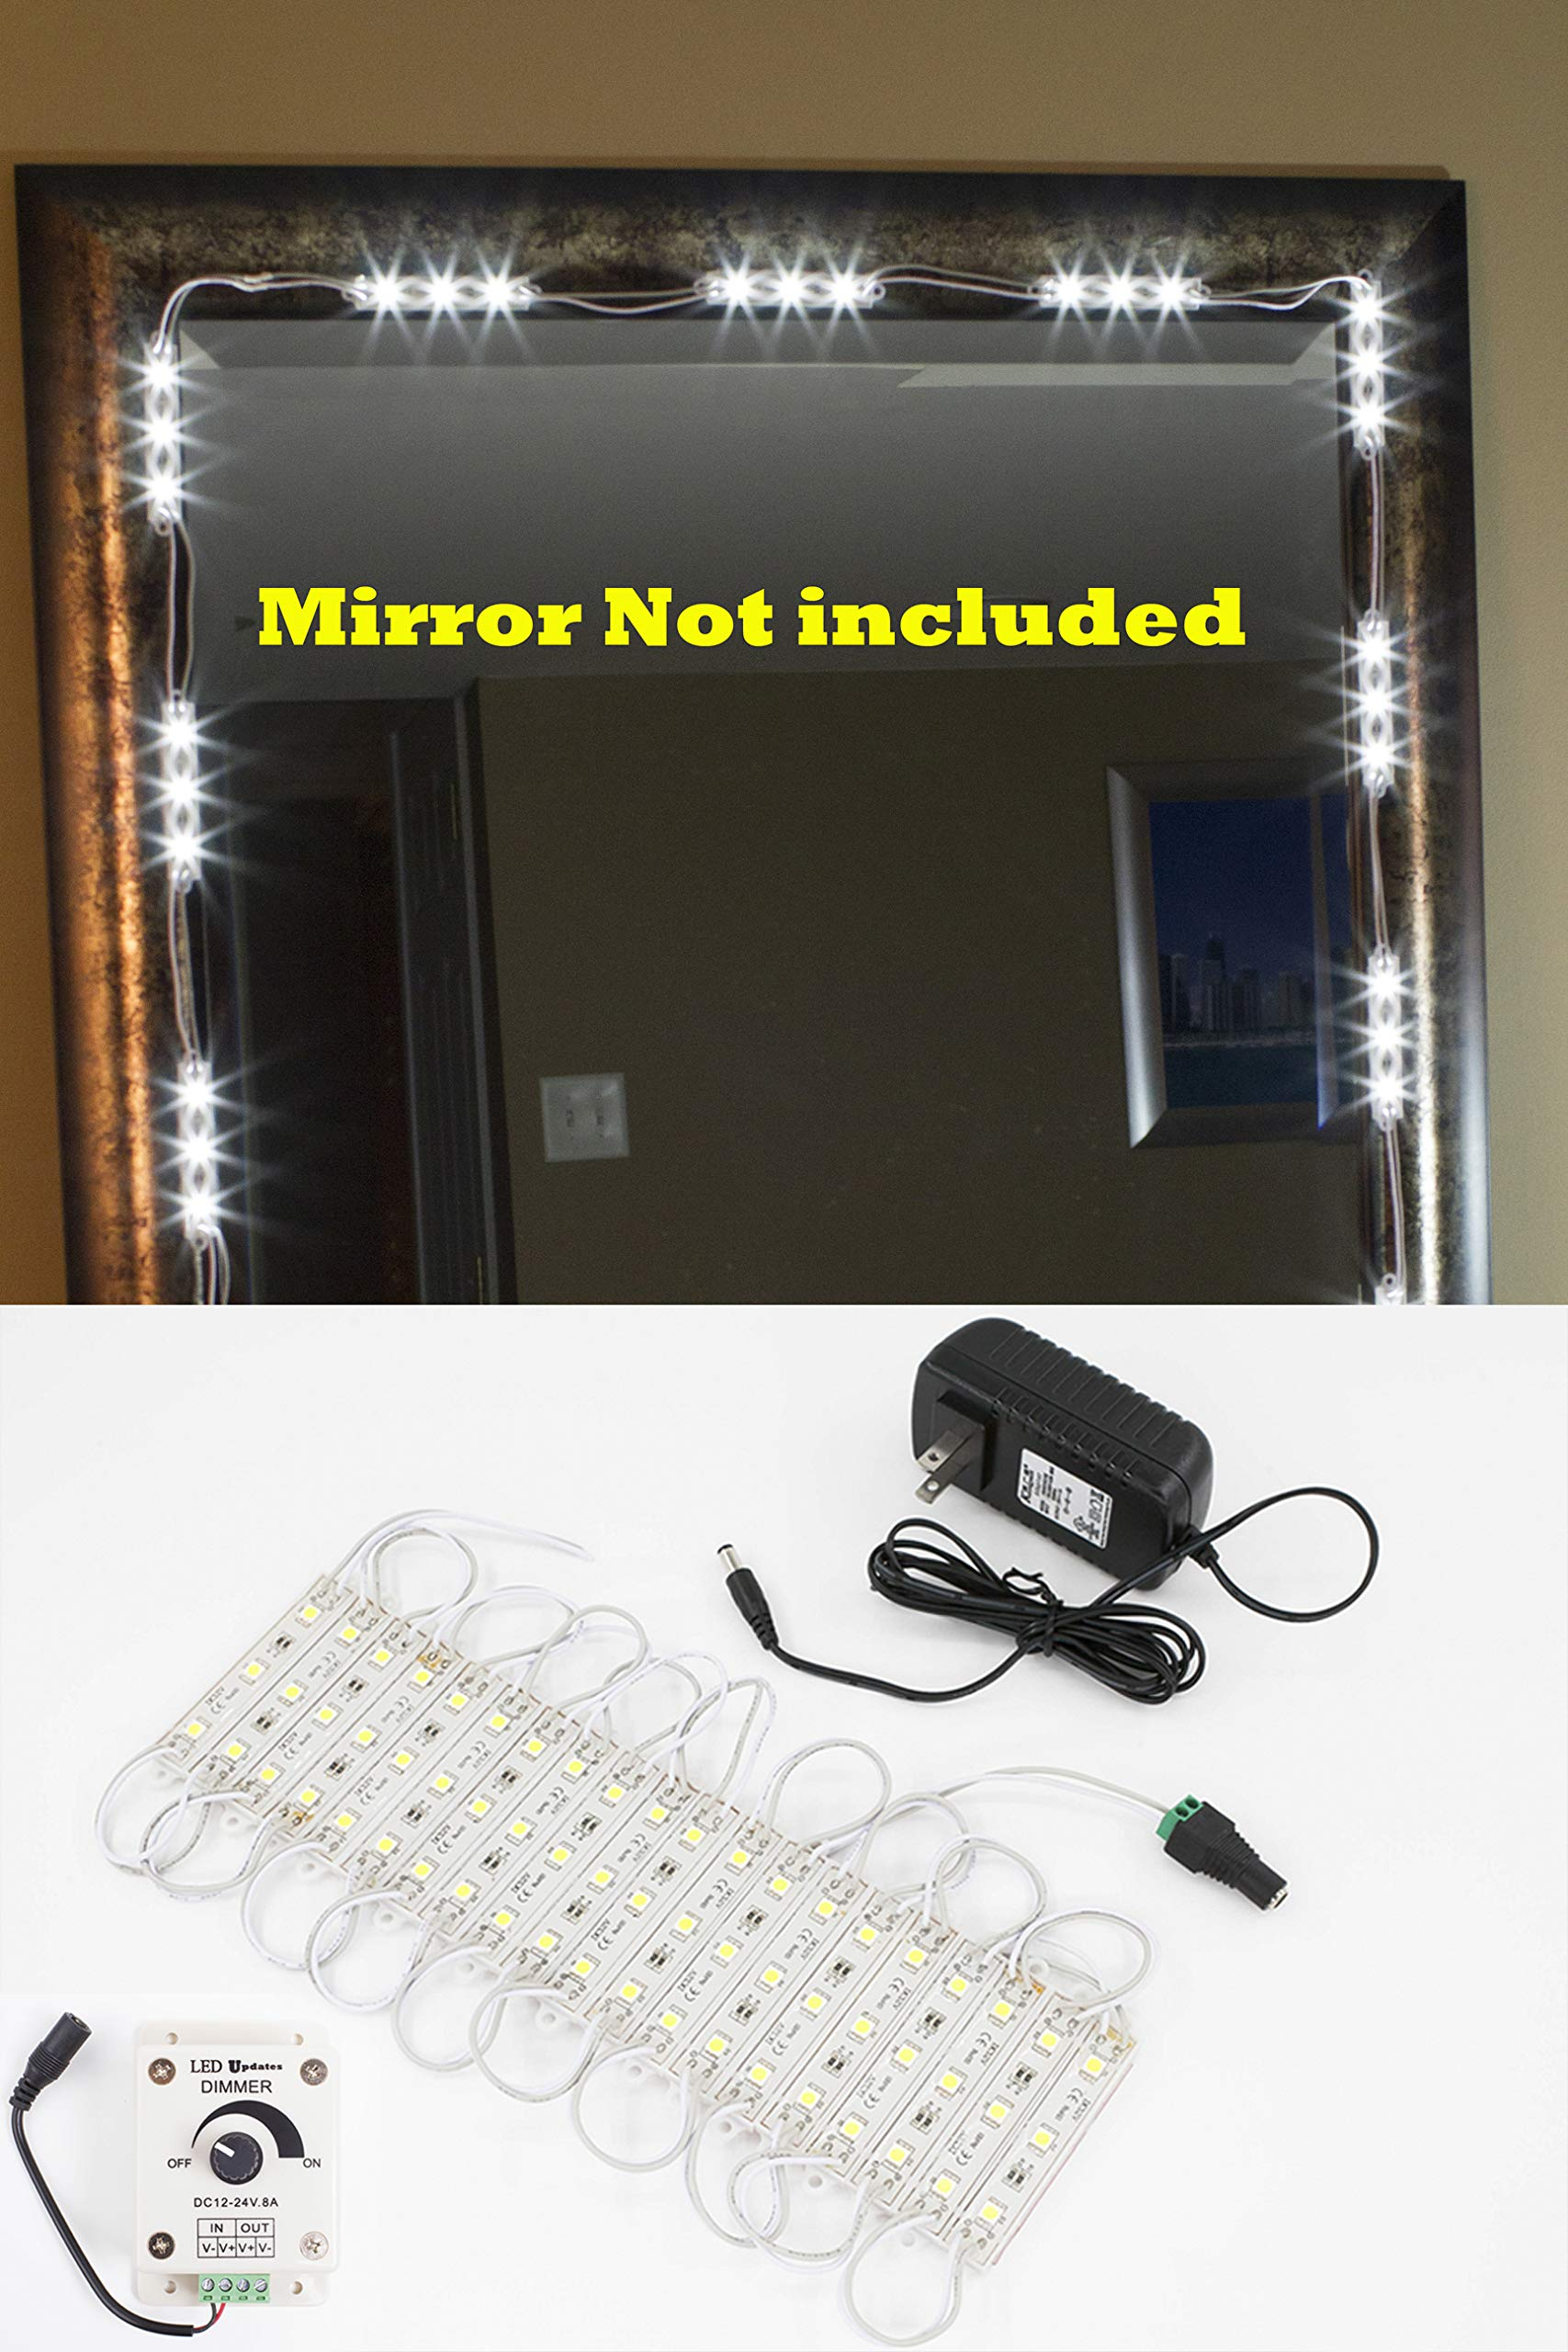 MAKE UP MIRROR LED LIGHT FOR VANITY MIRROR with dimmer and UL power supply eco series